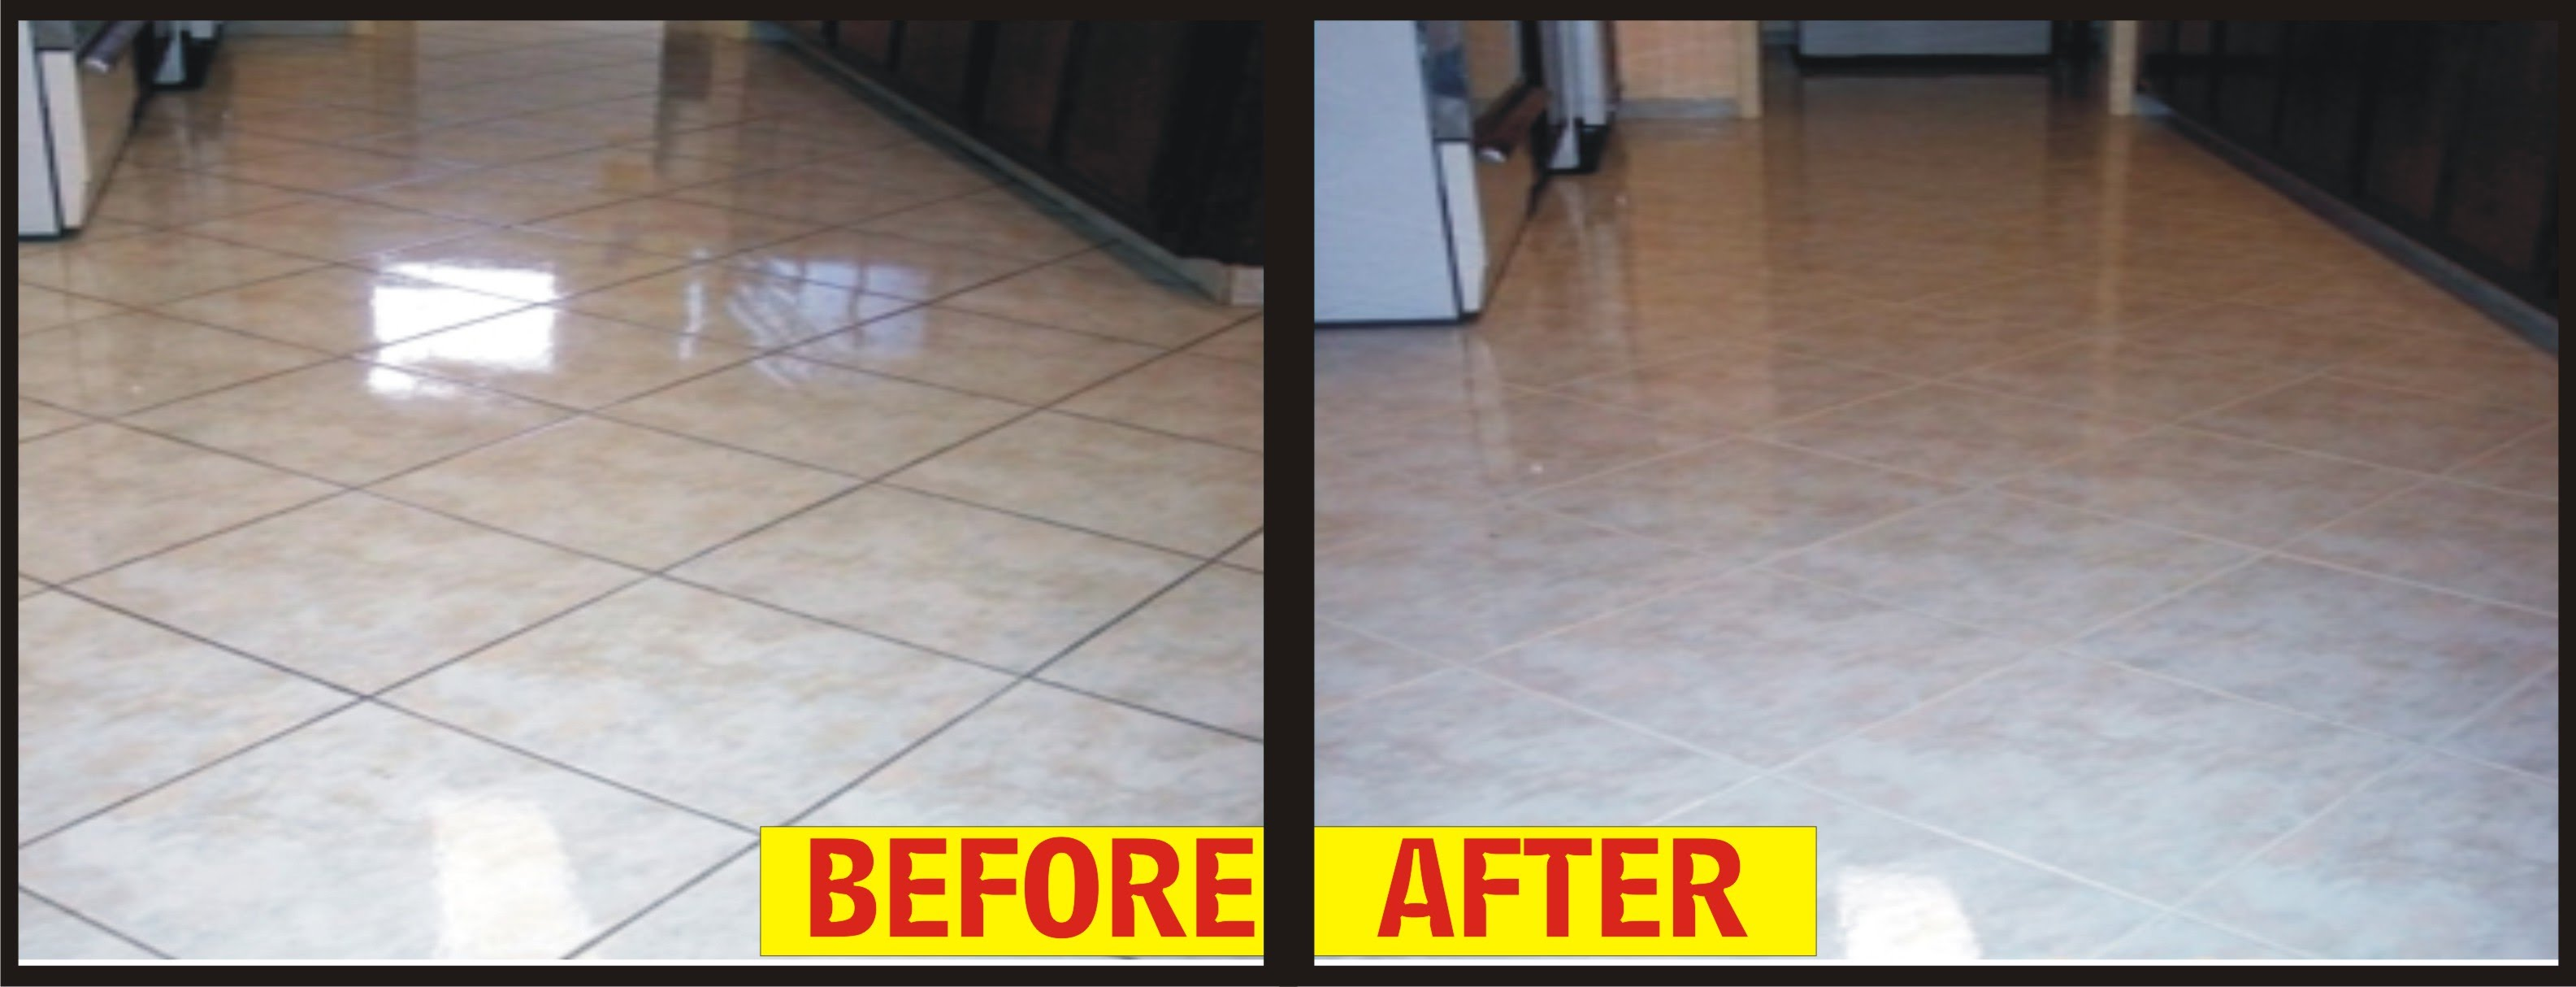 Tile grout cleaning tile grout cleaning carpet cleaner for Large vinyl floor tiles